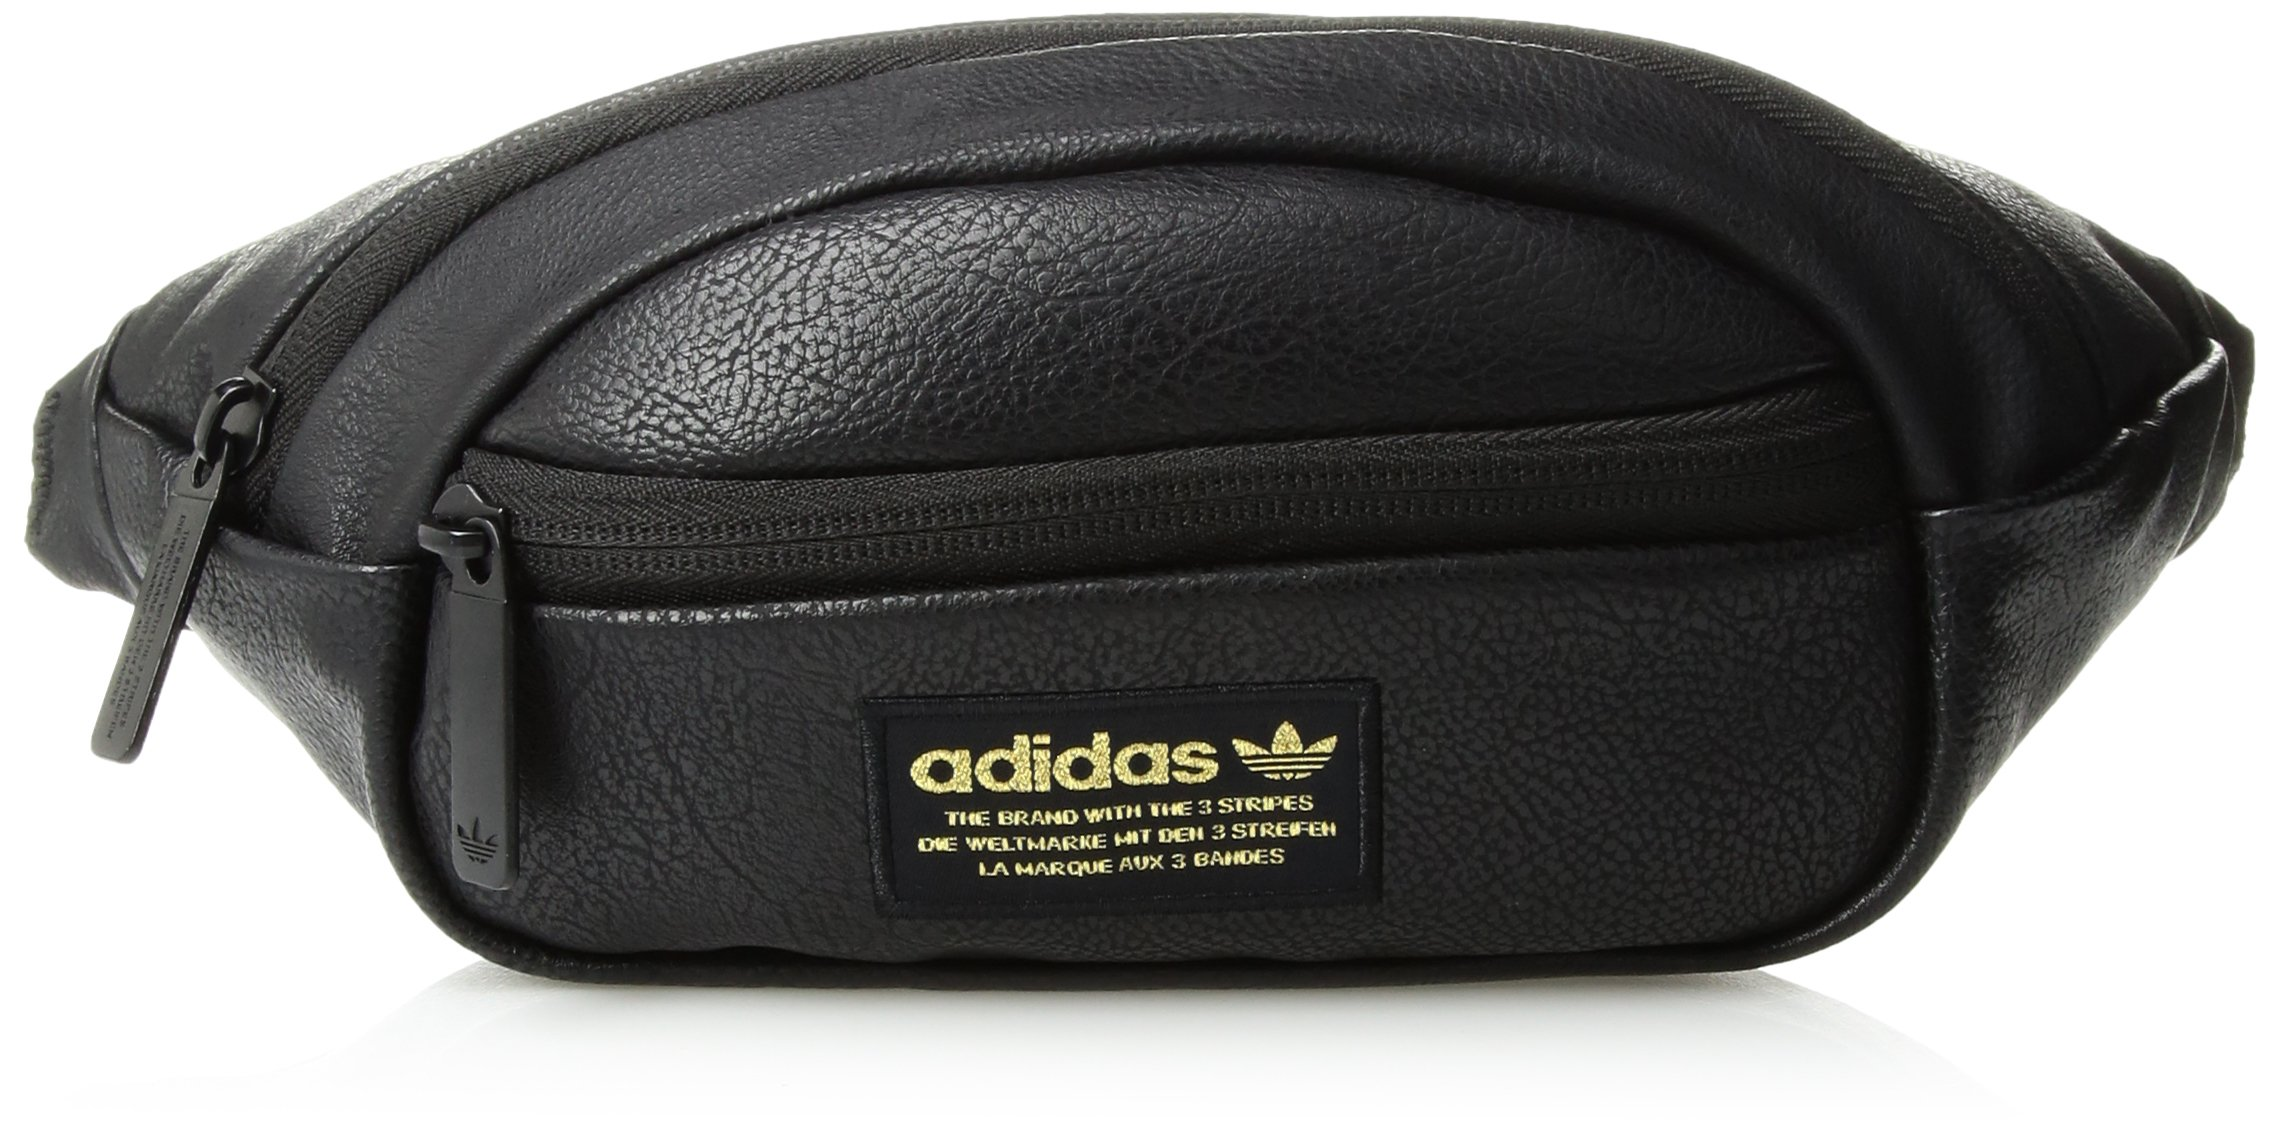 adidas Originals Unisex National Waist Pack, Black Pu Leather/Gold, ONE SIZE by adidas Originals